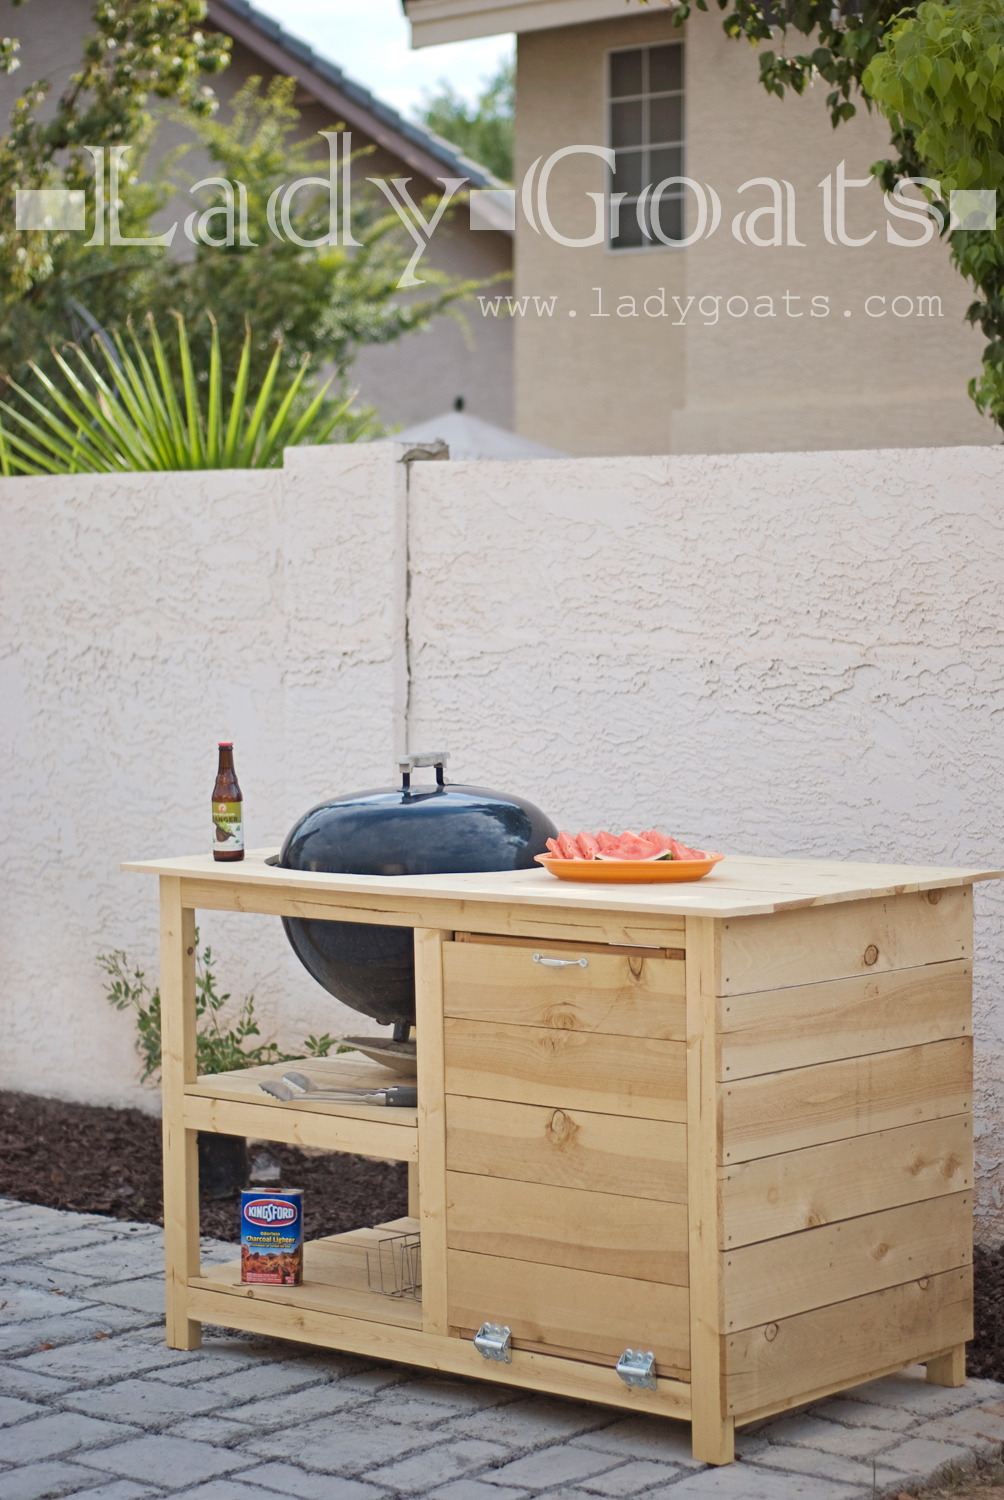 7 Best DIY Grill Station Ideas and Projects for 2020 on Patio Grill Station id=63746